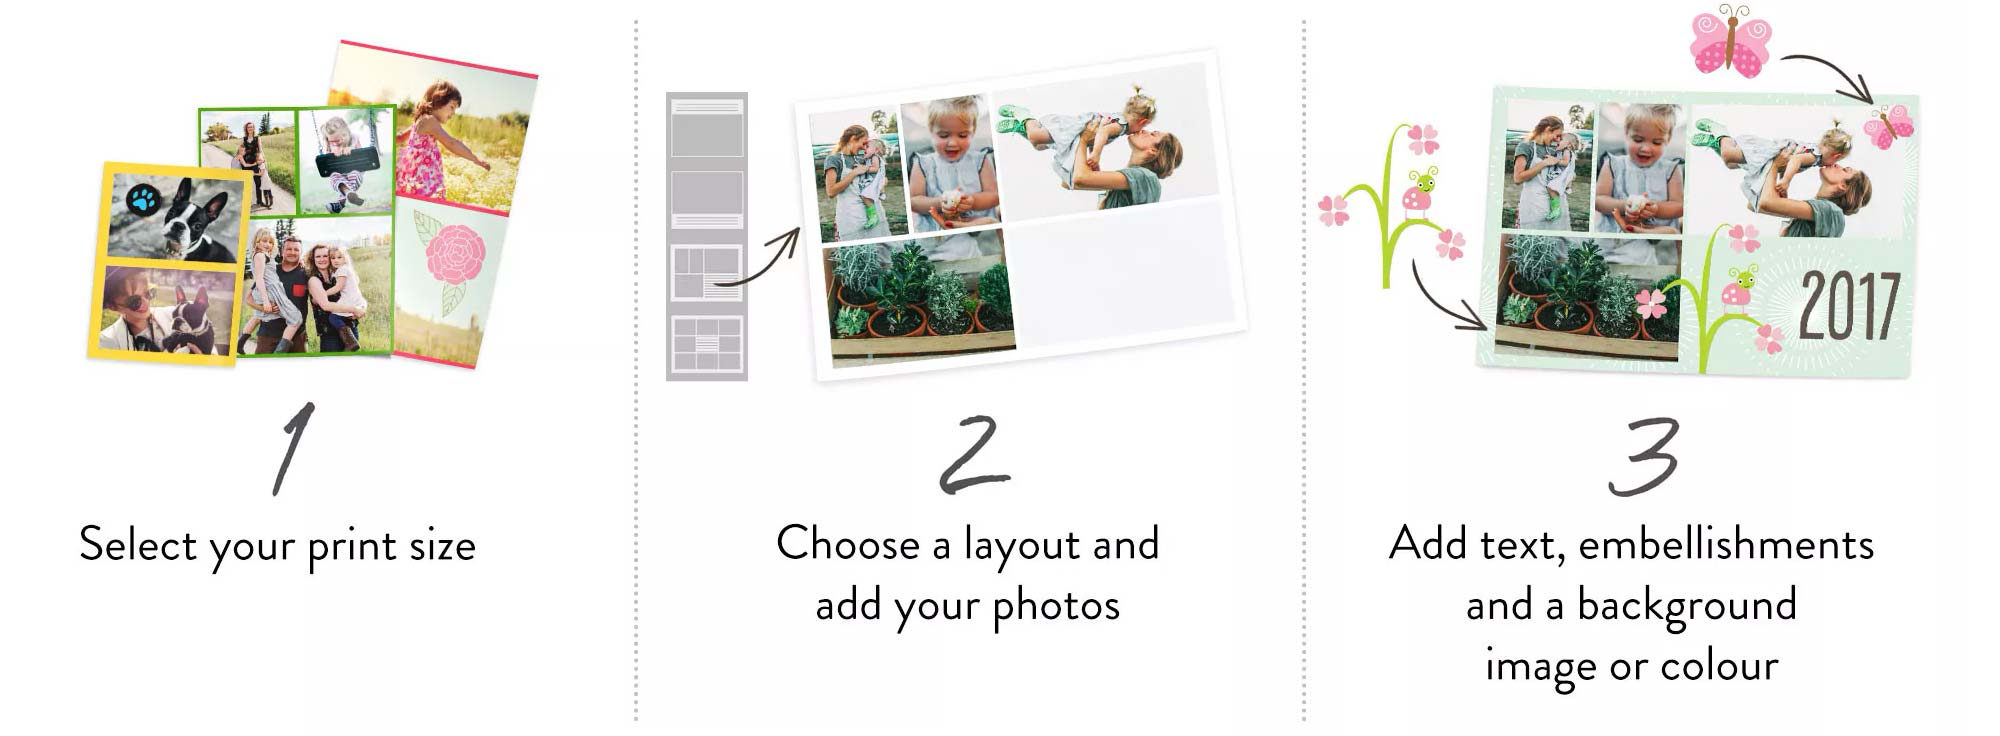 create a collage print in 3 easy steps